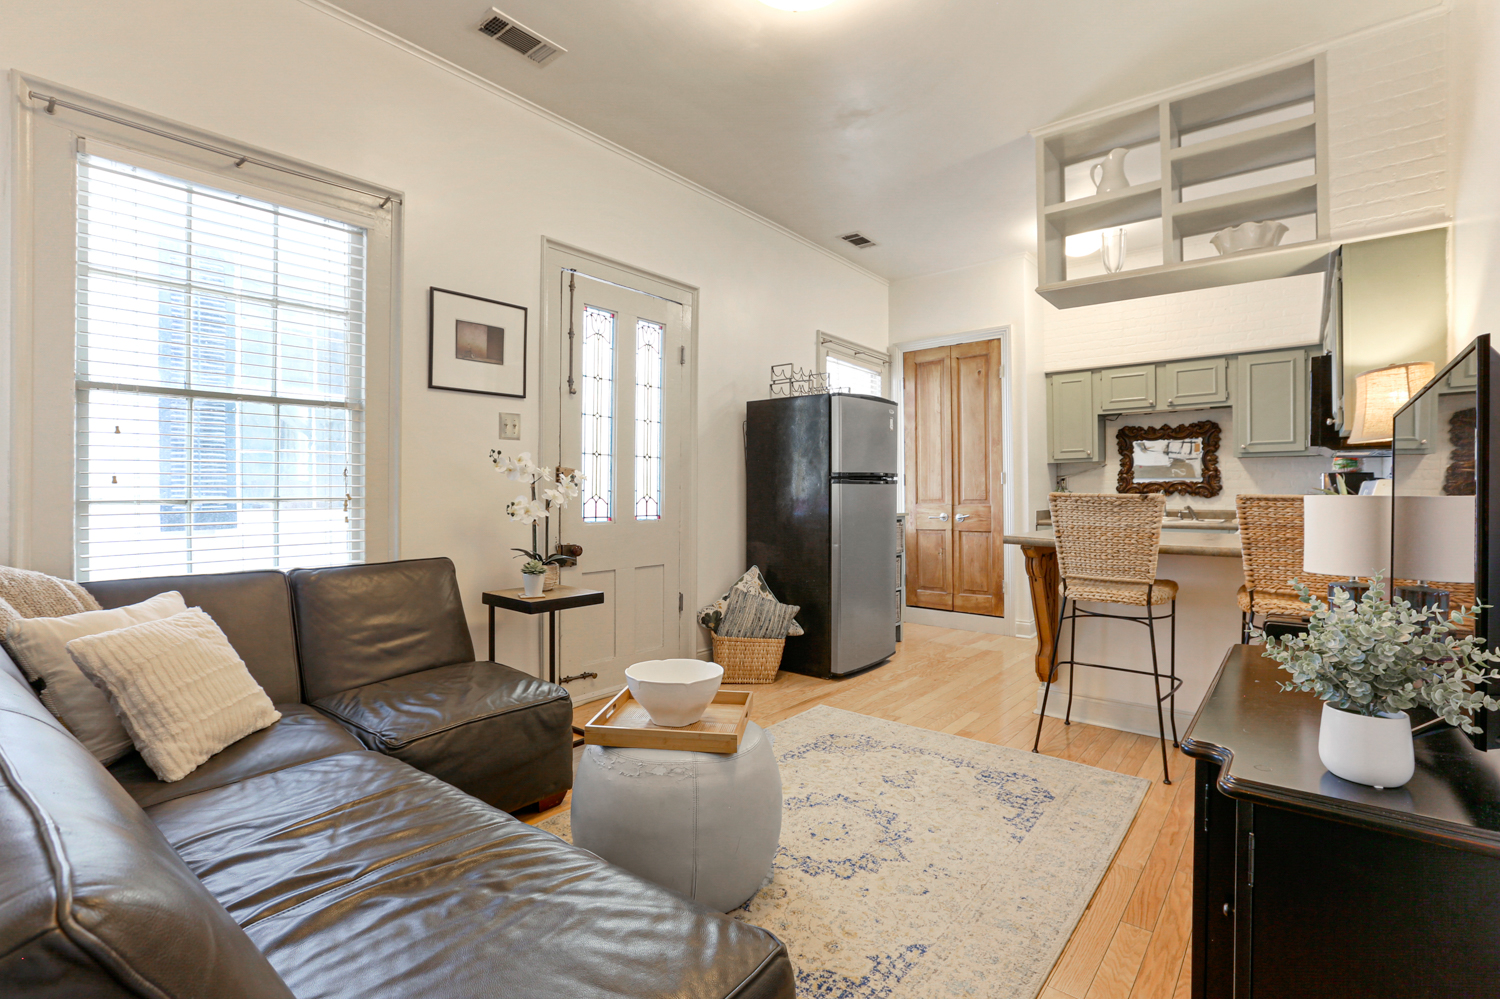 Garden District, Apartment, 1 beds, 1.0 baths, $2100 per month New Orleans Rental - devie image_4